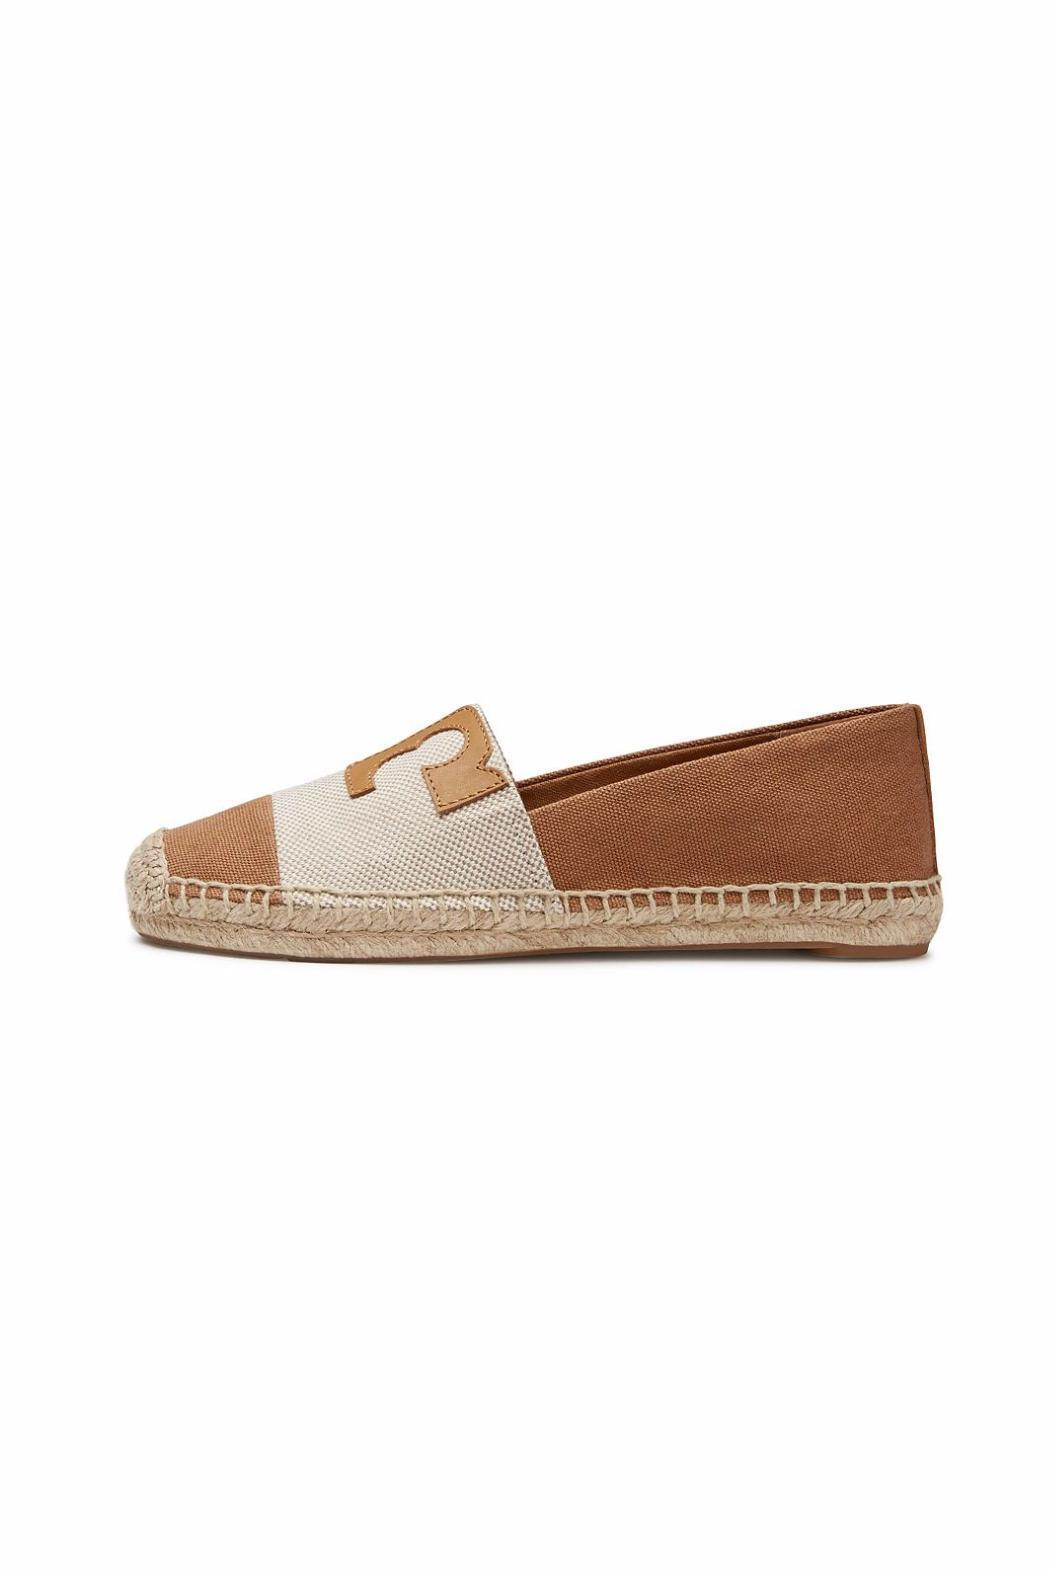 Tory Burch Canvas Espadrille Pumps outlet low cost free shipping sneakernews really cheap online cheap real finishline discount popular y7zGAo